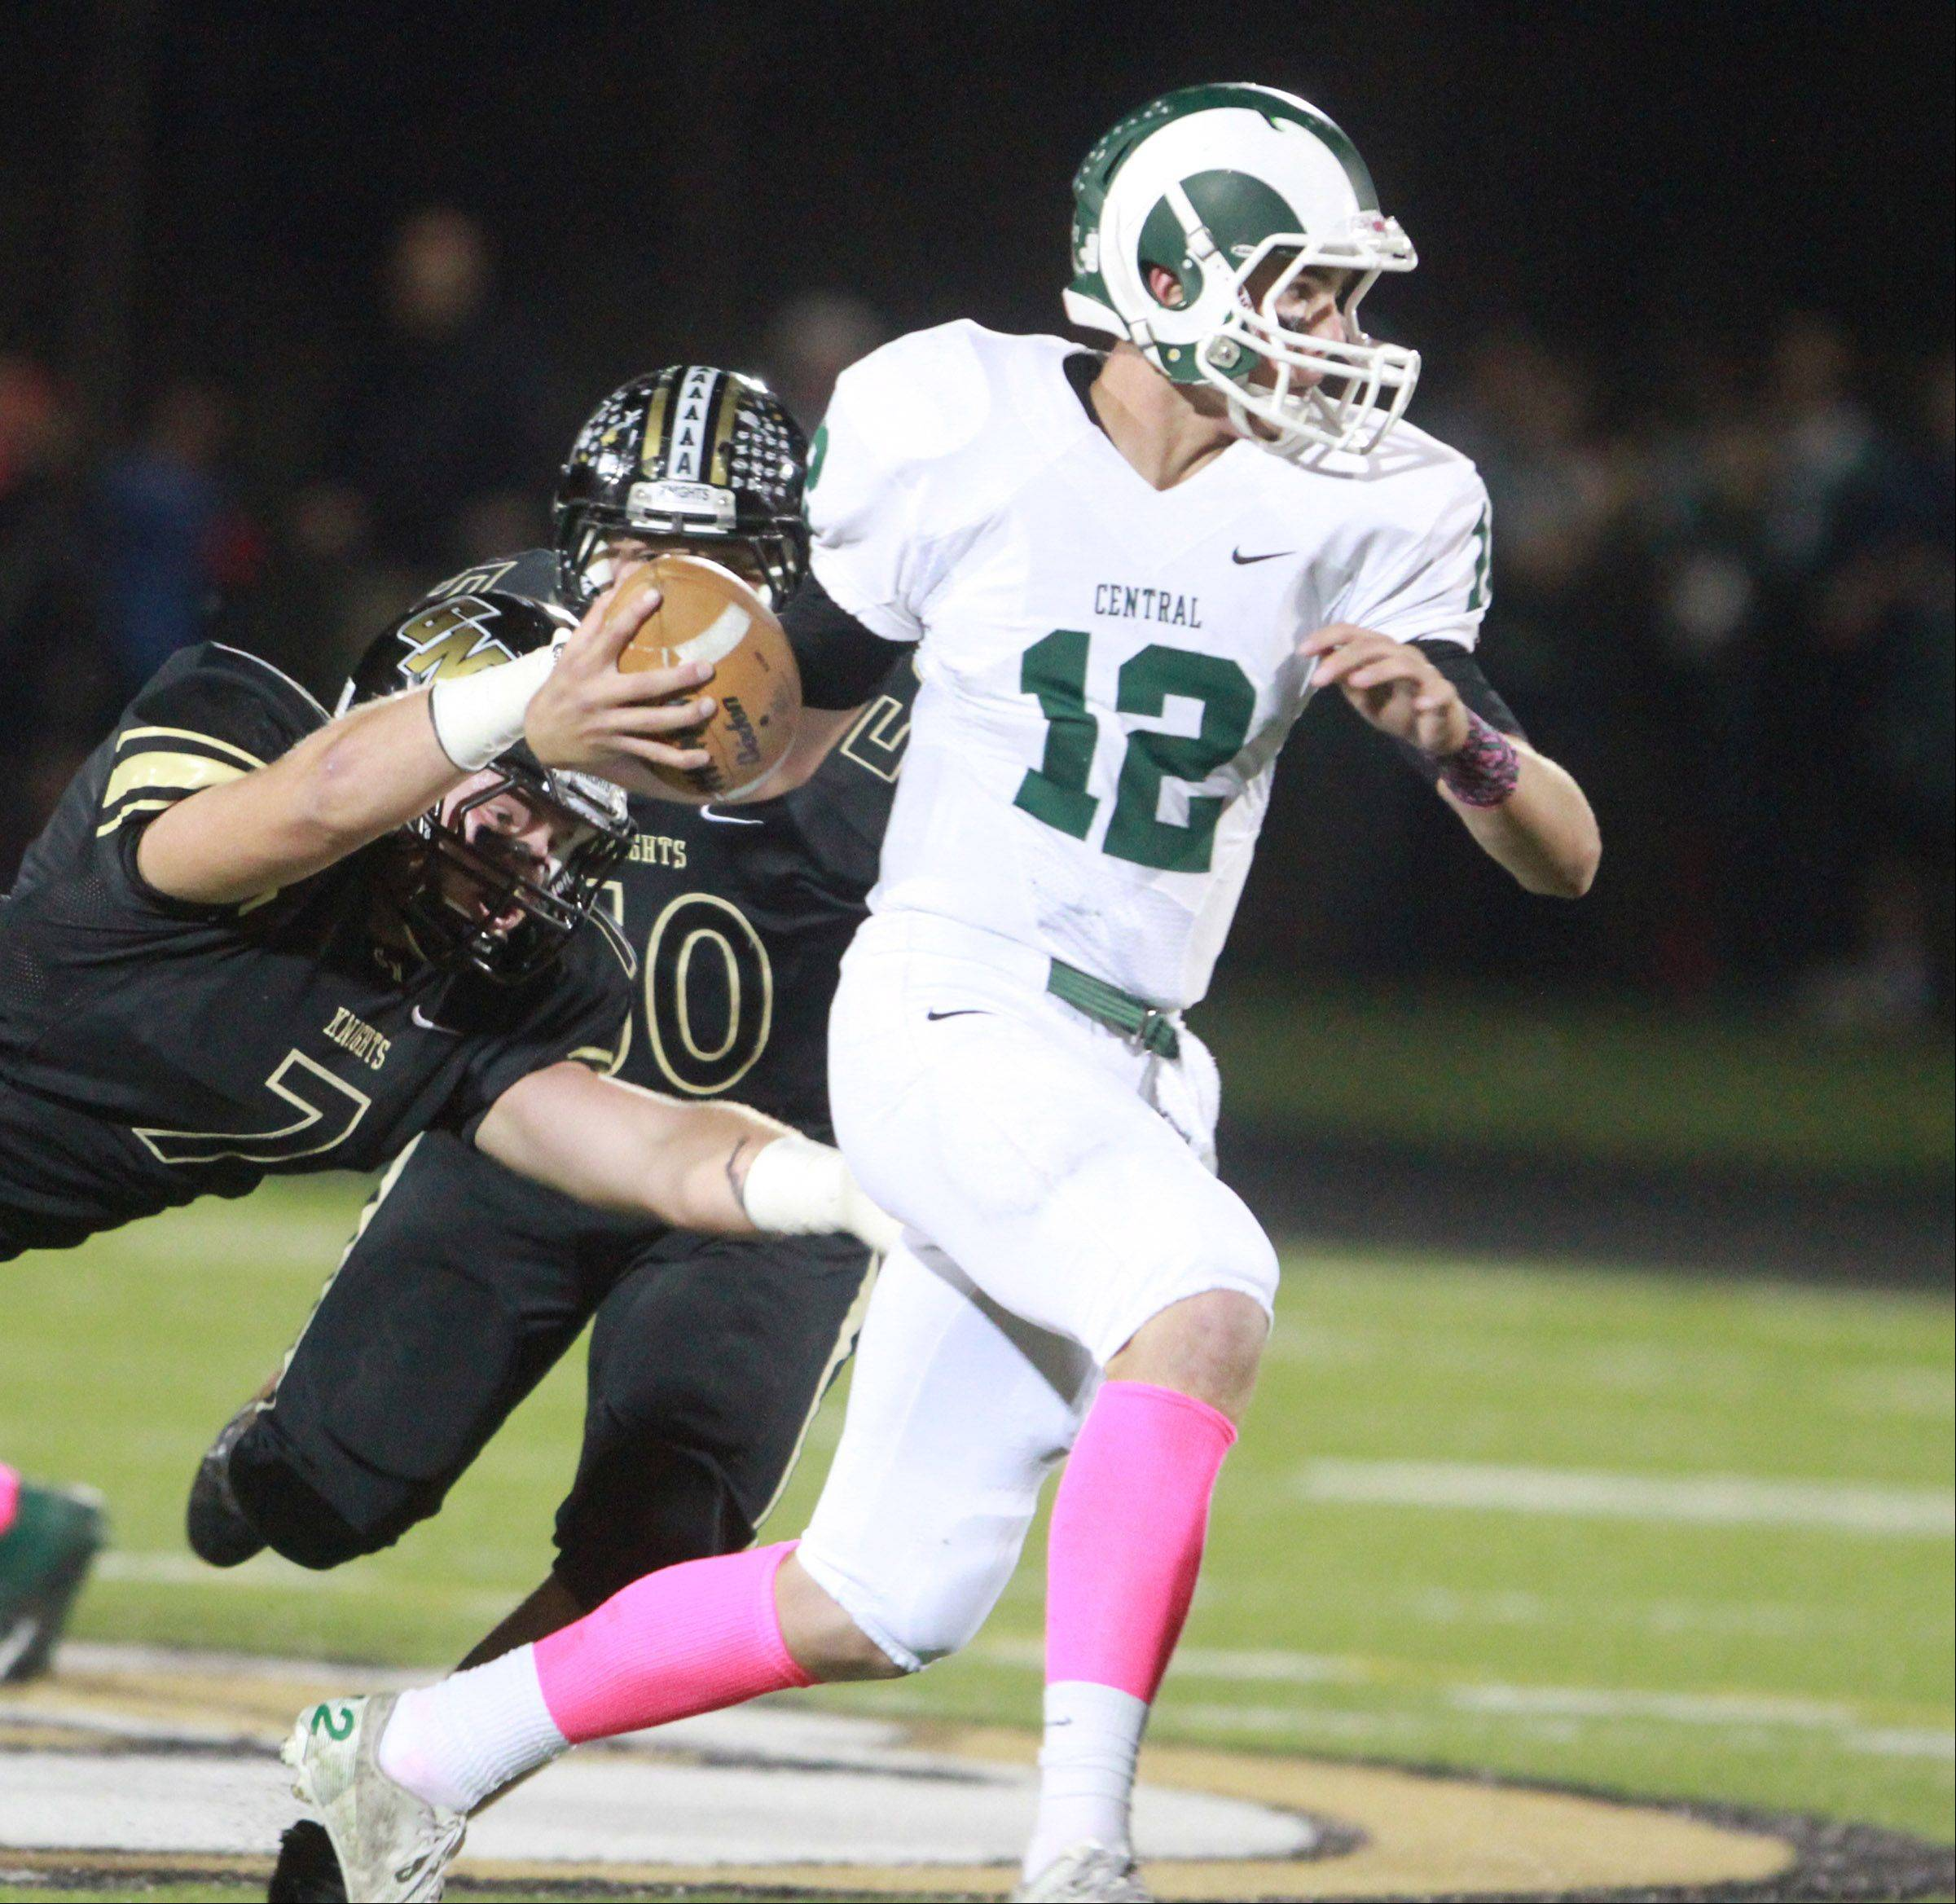 Grayslake Central quarterback Alex Lennartz runs the ball.